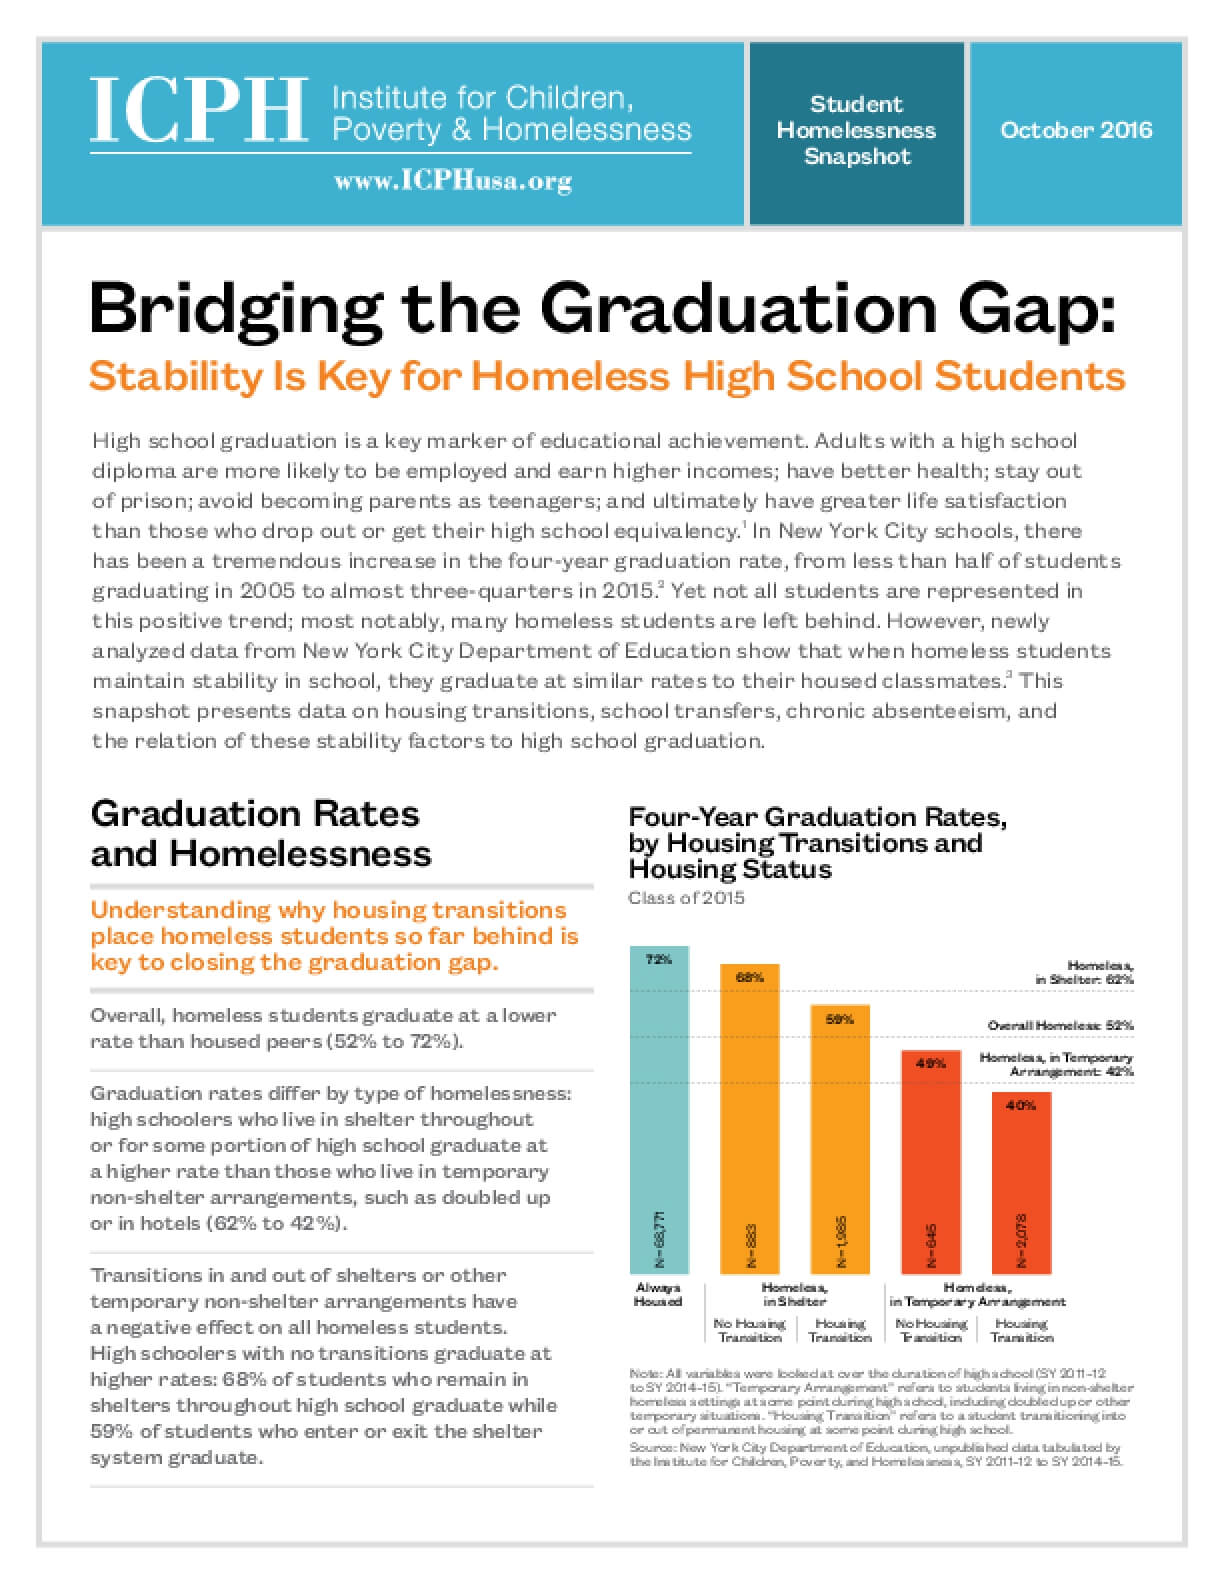 Bridging the Graduation Gap: Stability Is Key for Homeless High School Students